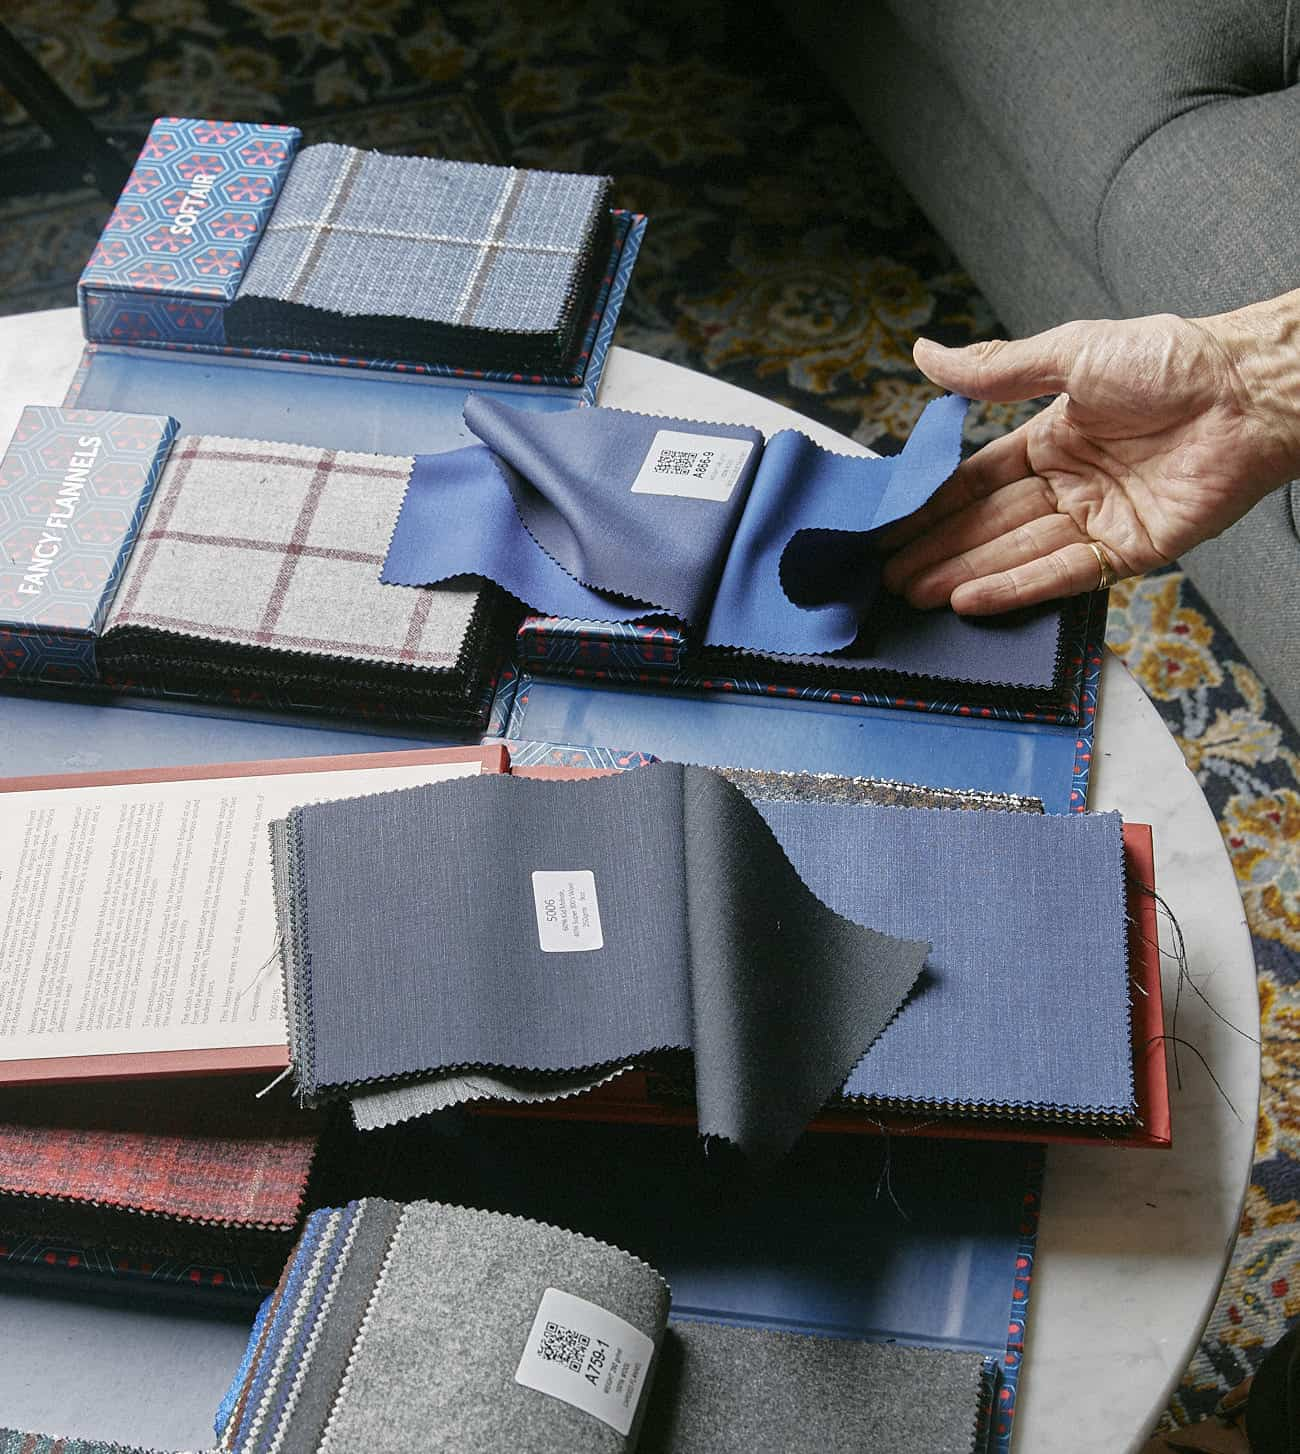 Fabric books.jpg